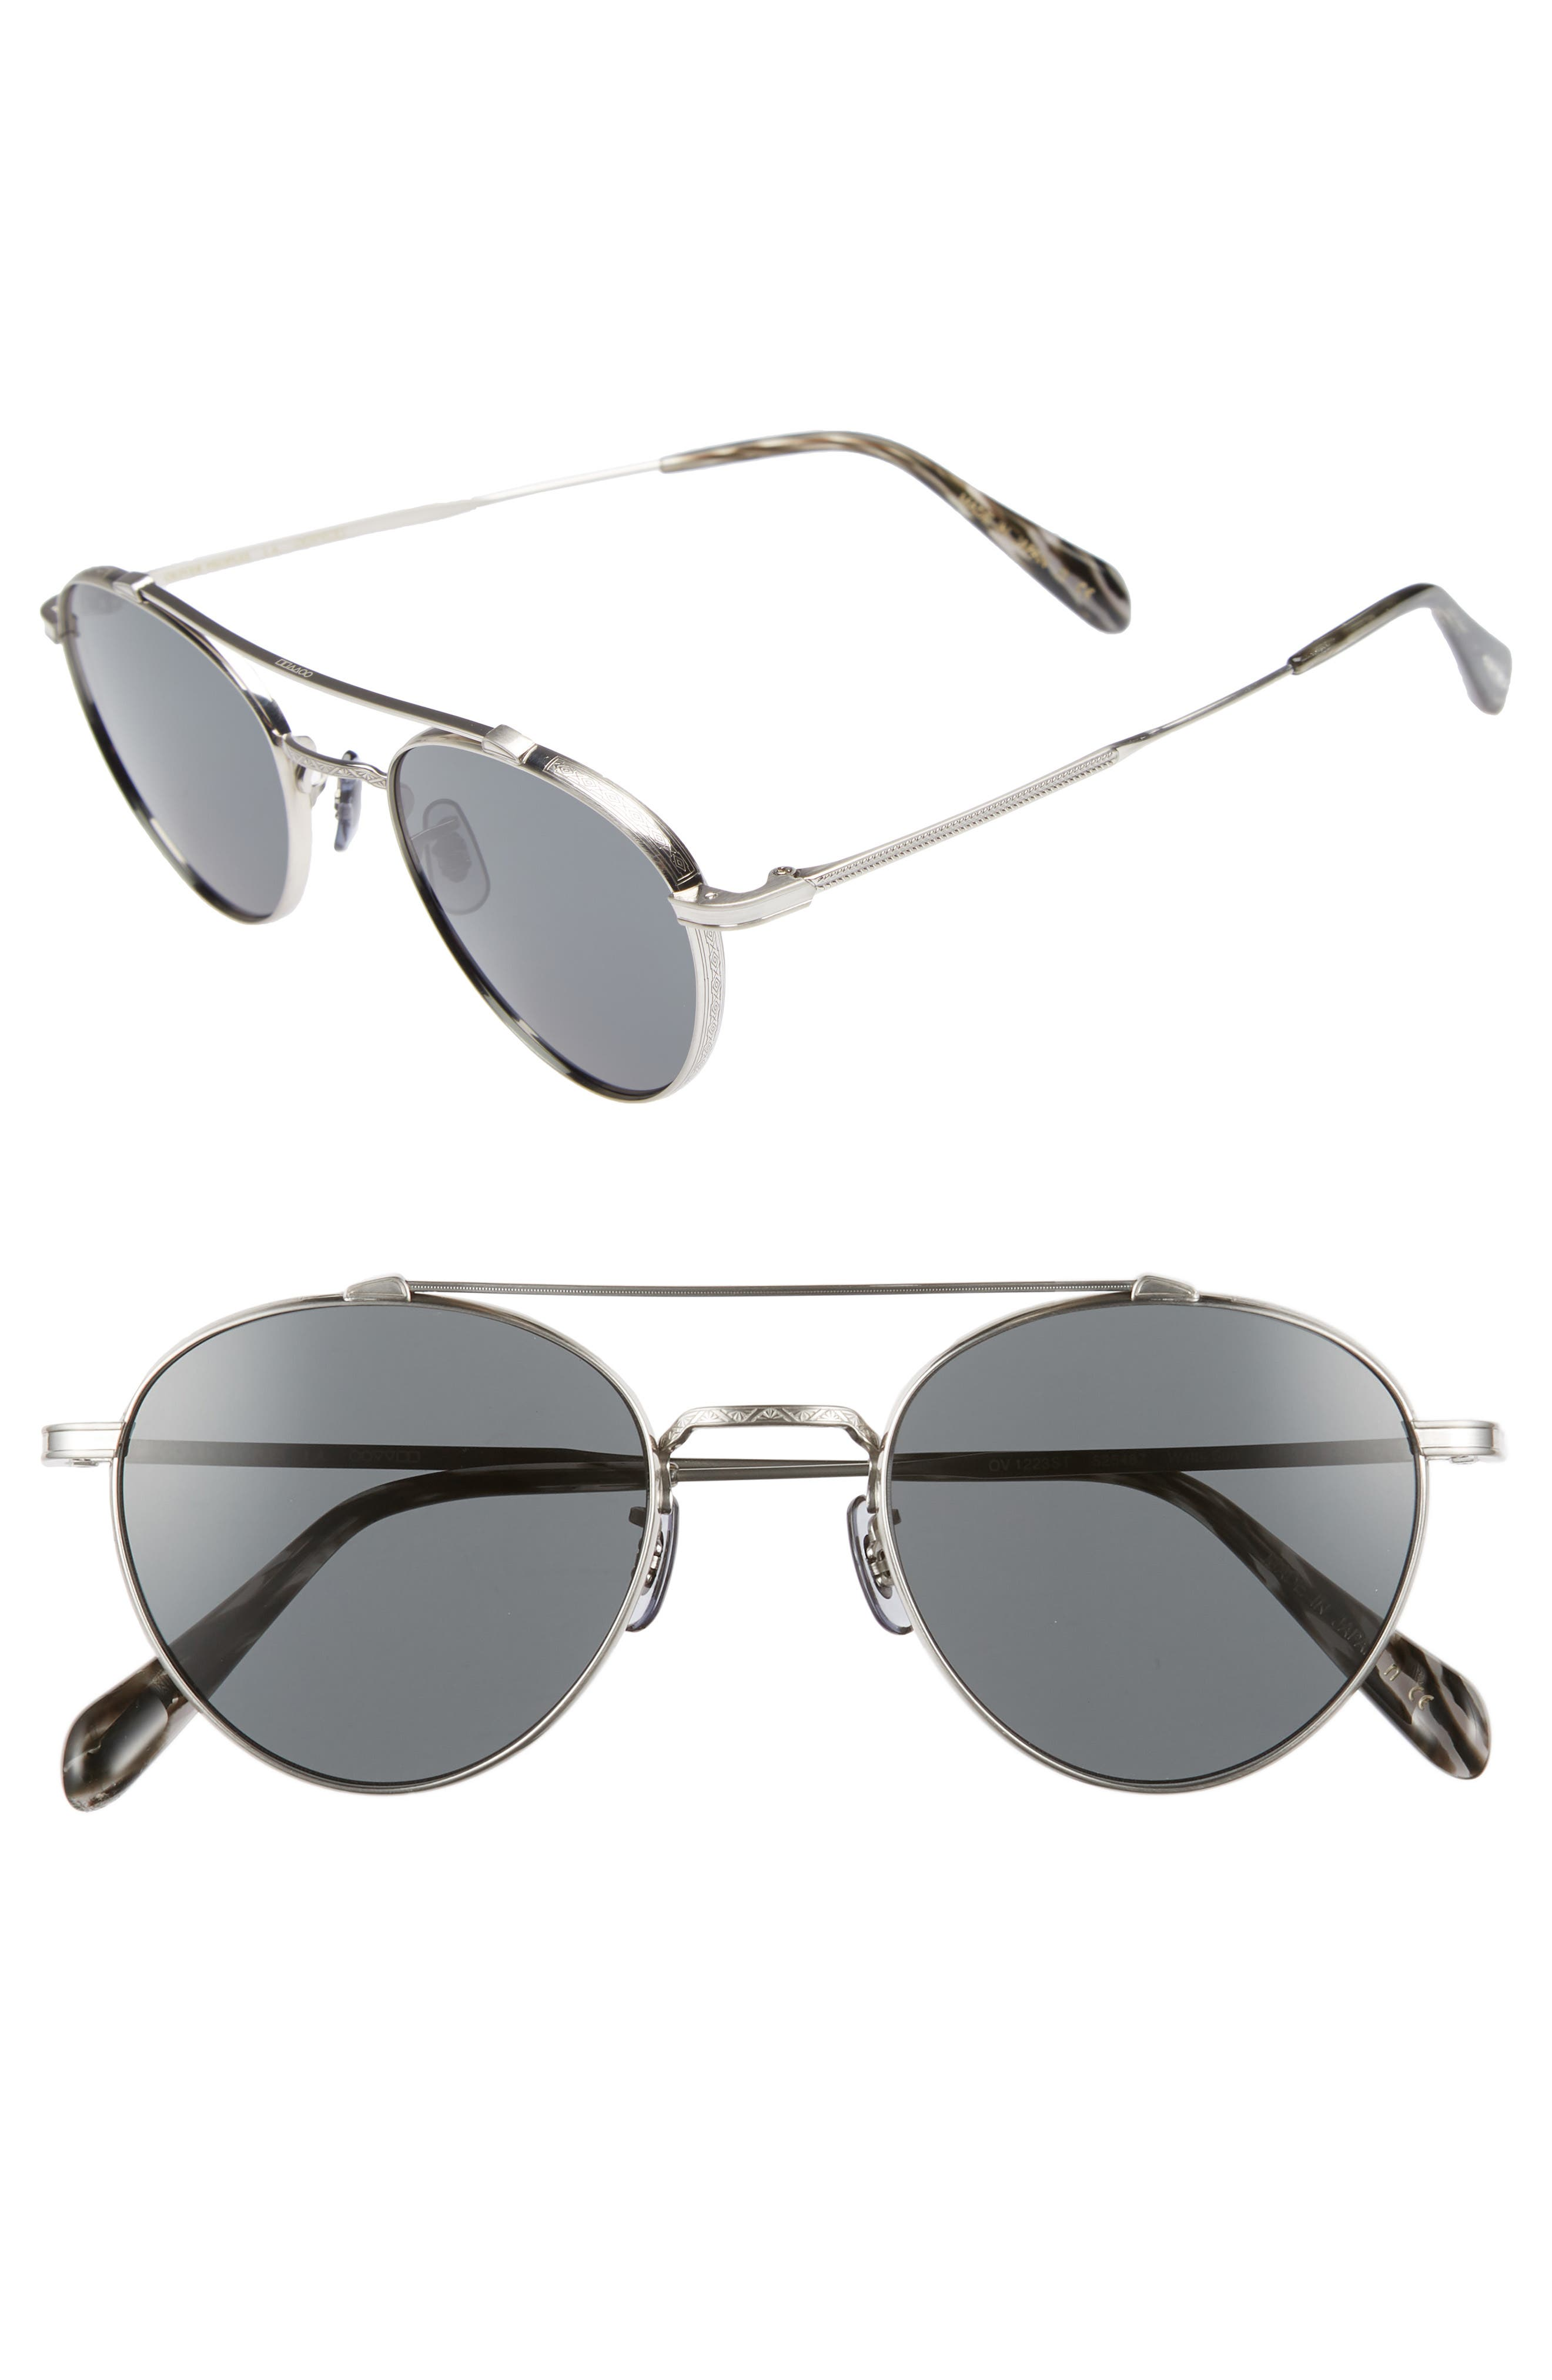 Watts 49mm Round Sunglasses,                         Main,                         color, 020